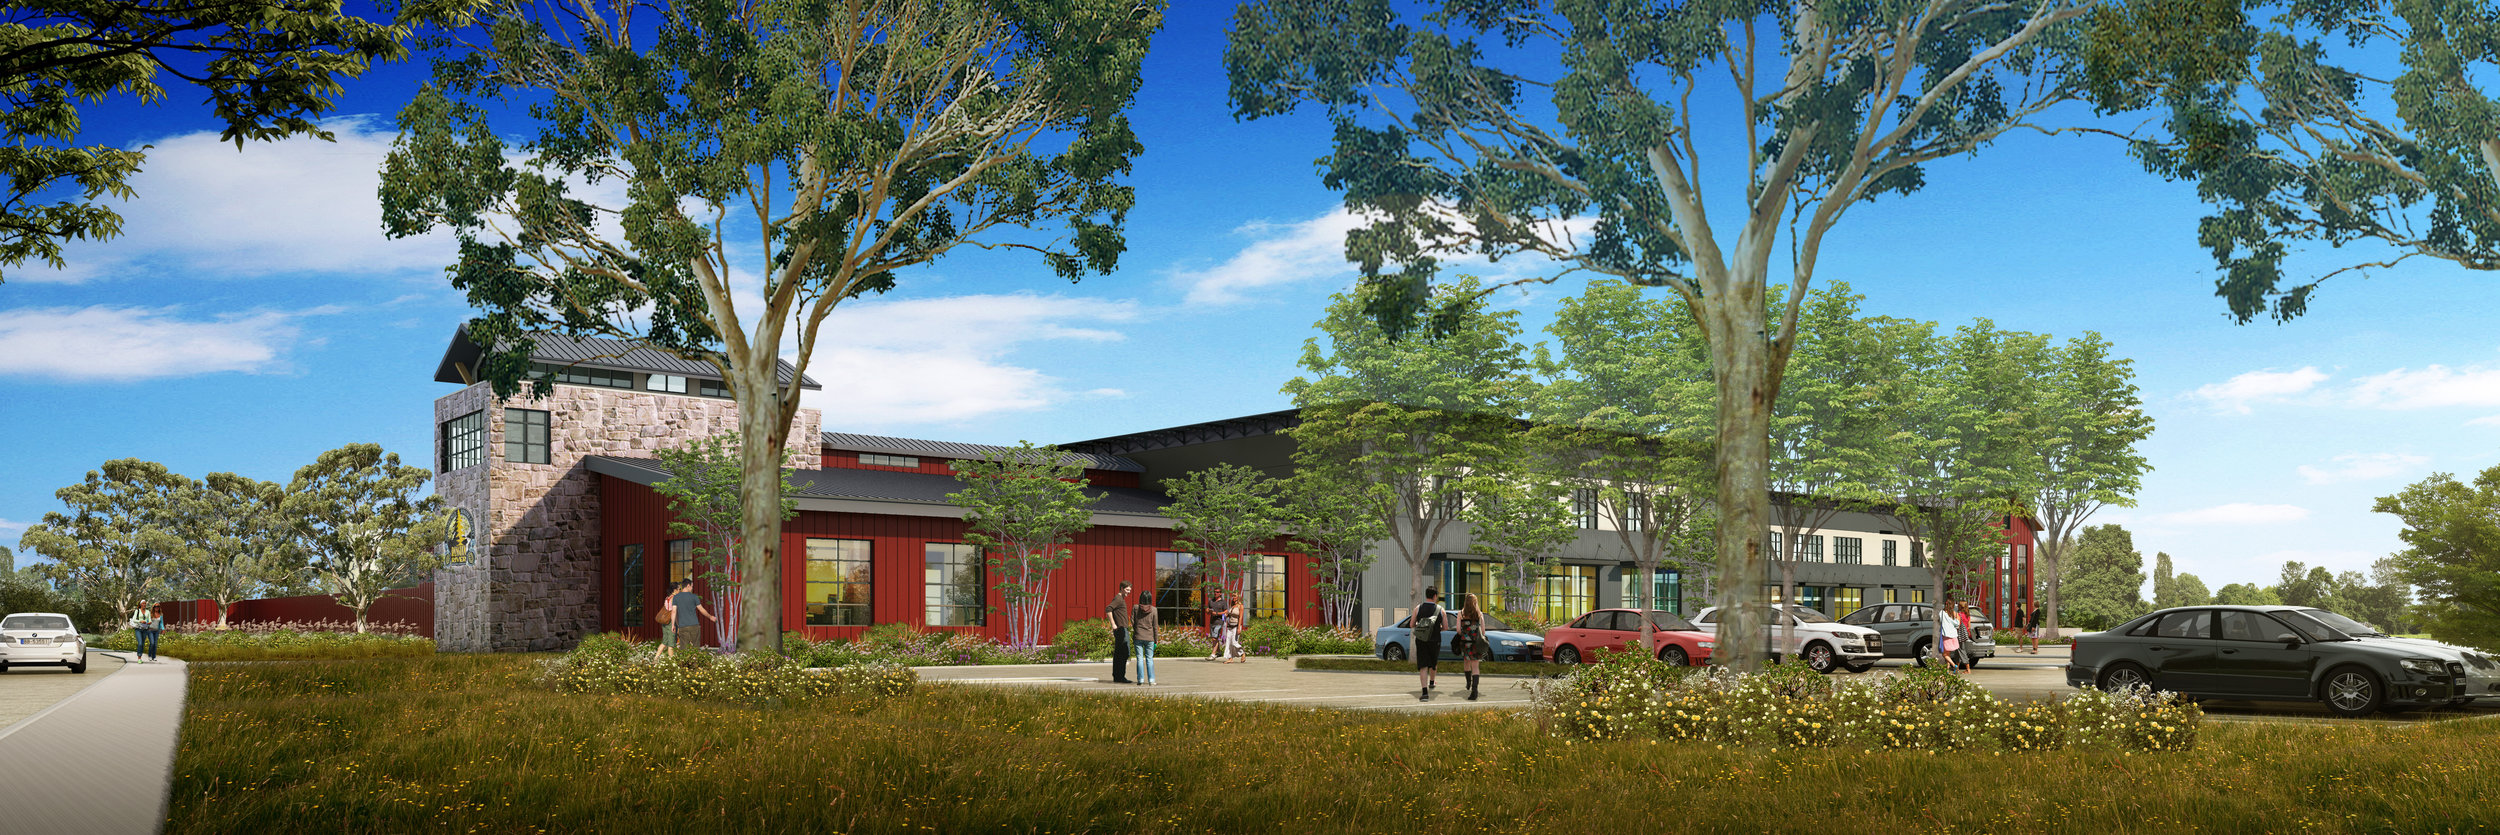 The above site will be transformed into the new Russian River Brewery, a 35,000-barrel brewhouse located in Sonoma County, California. And yes, Pliny the Younger will be released here too!